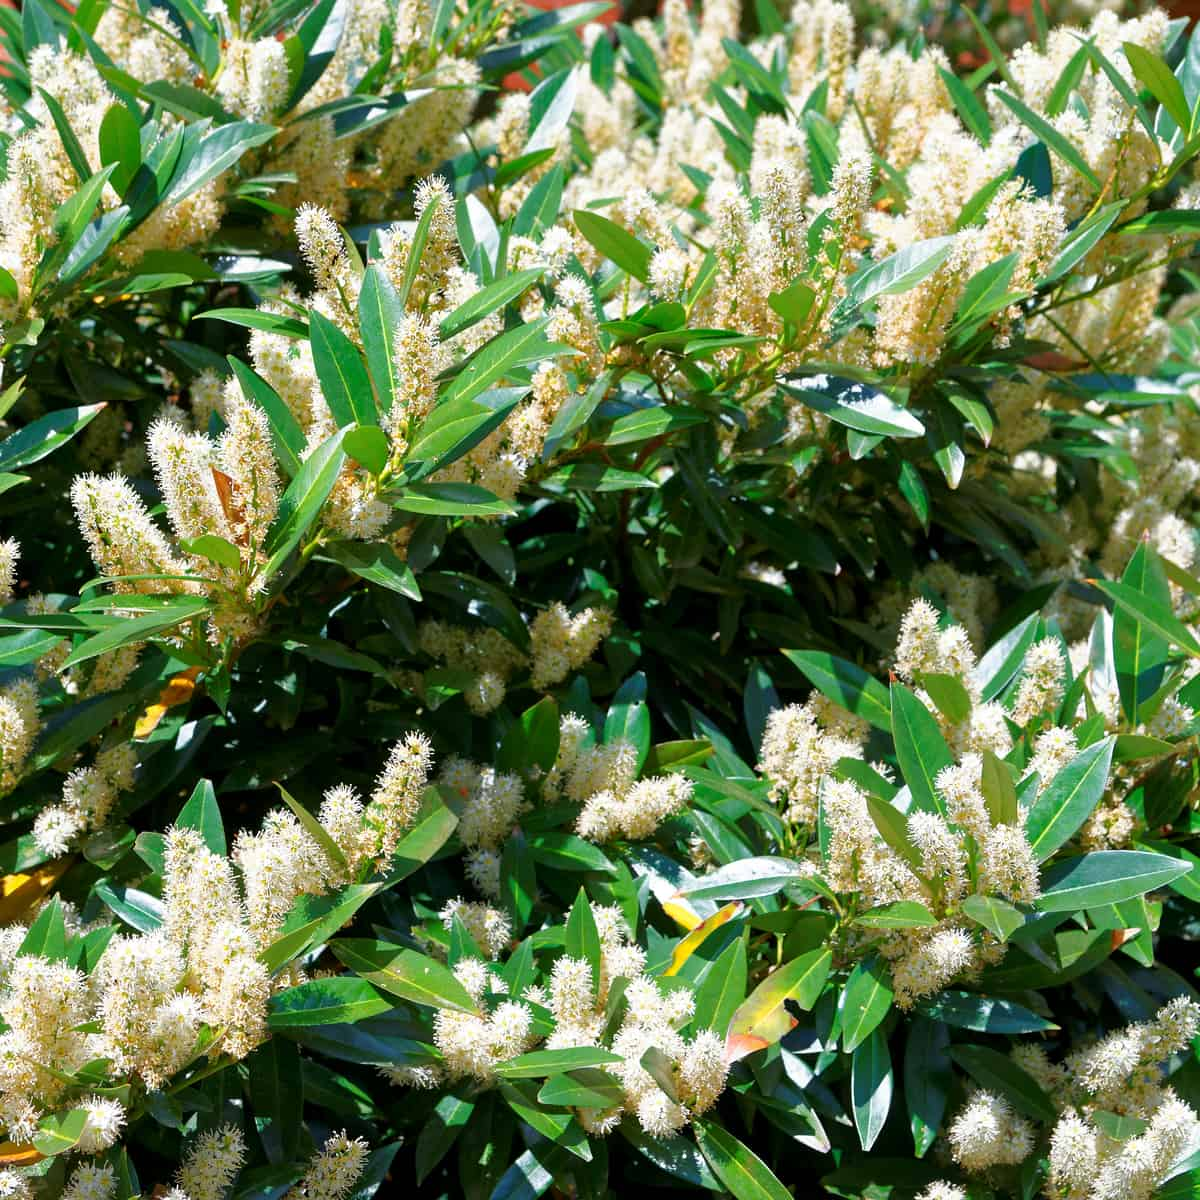 sweetspire is a shrub that is easy to grow